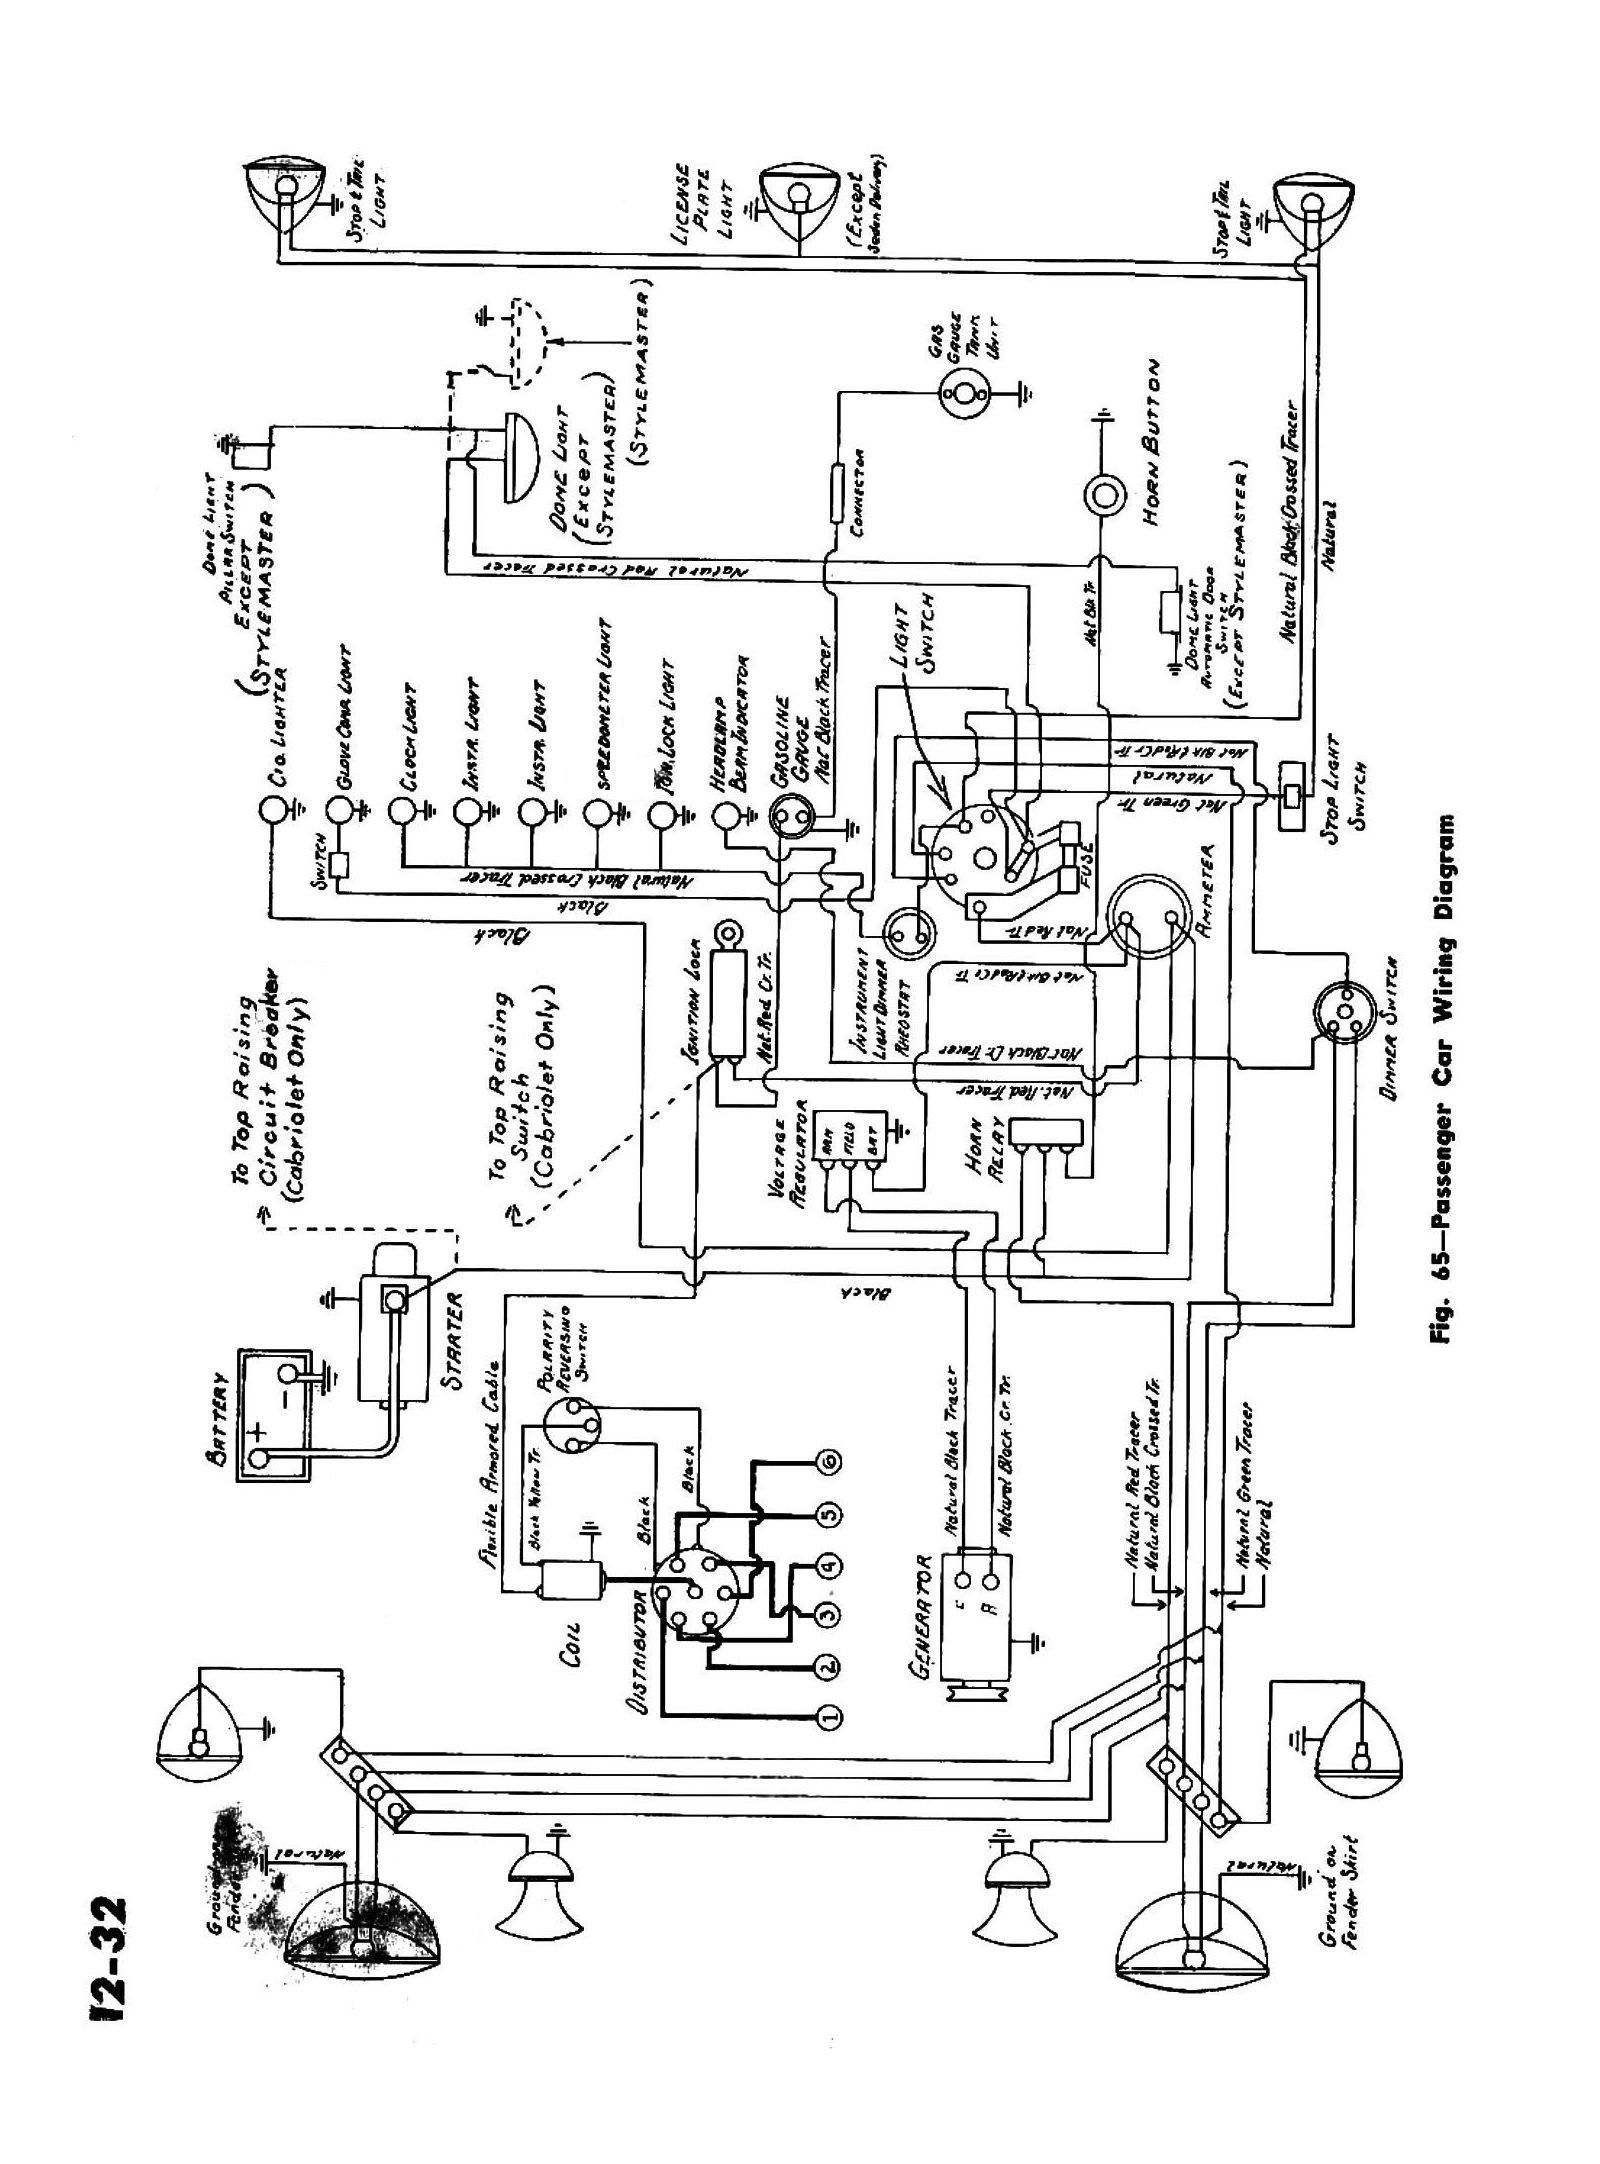 Diagram 2010 International 4400 Wiring Diagram Full Version Hd Quality Wiring Diagram Sitexbenz Fattoriagarbole It